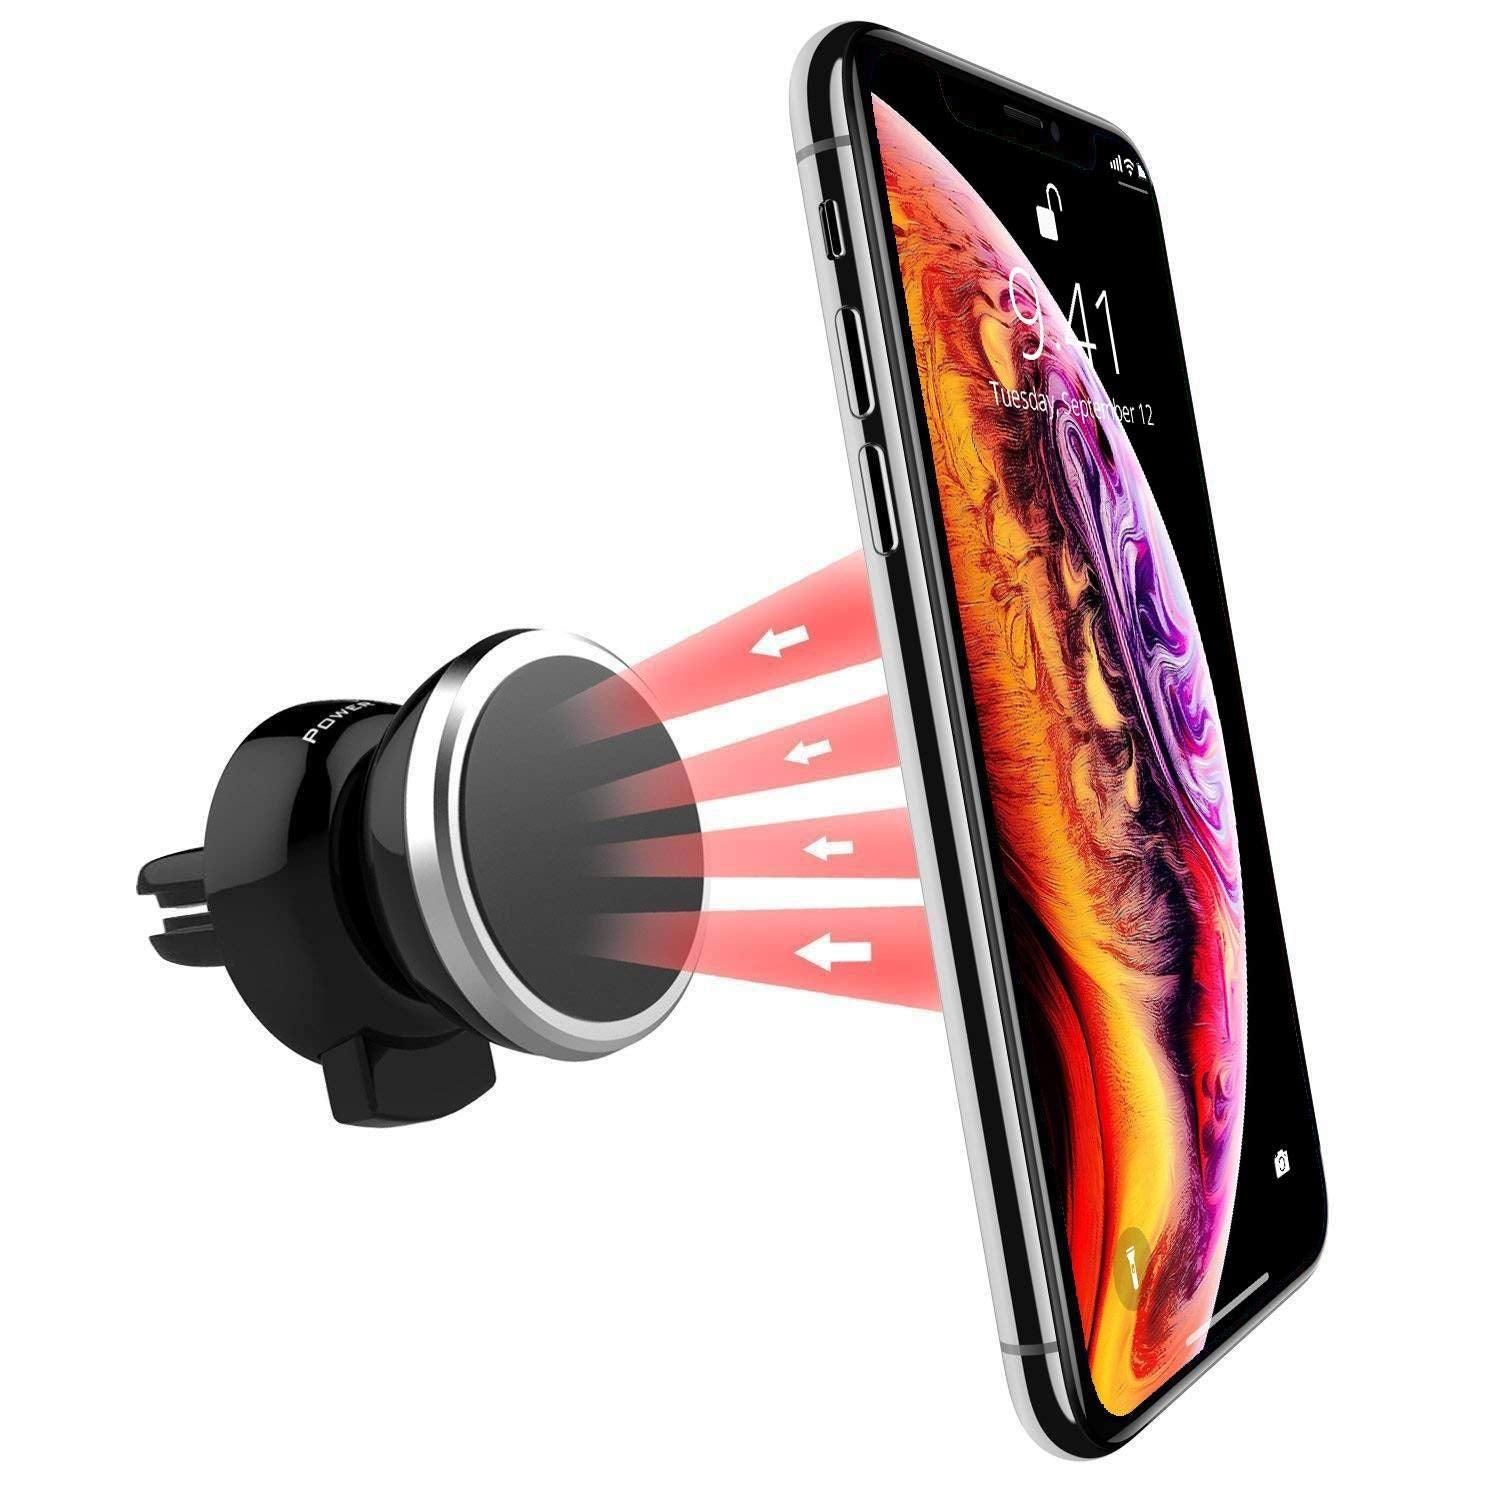 Power Theory Magnetic Car Phone Holder - Universal Air Vent Cell Phone Mount for iPhone XS Max XR XS/X 8 7 Plus 6s 6 SE Samsung Galaxy S10 S9 S8 and other Smartphones - In-Car